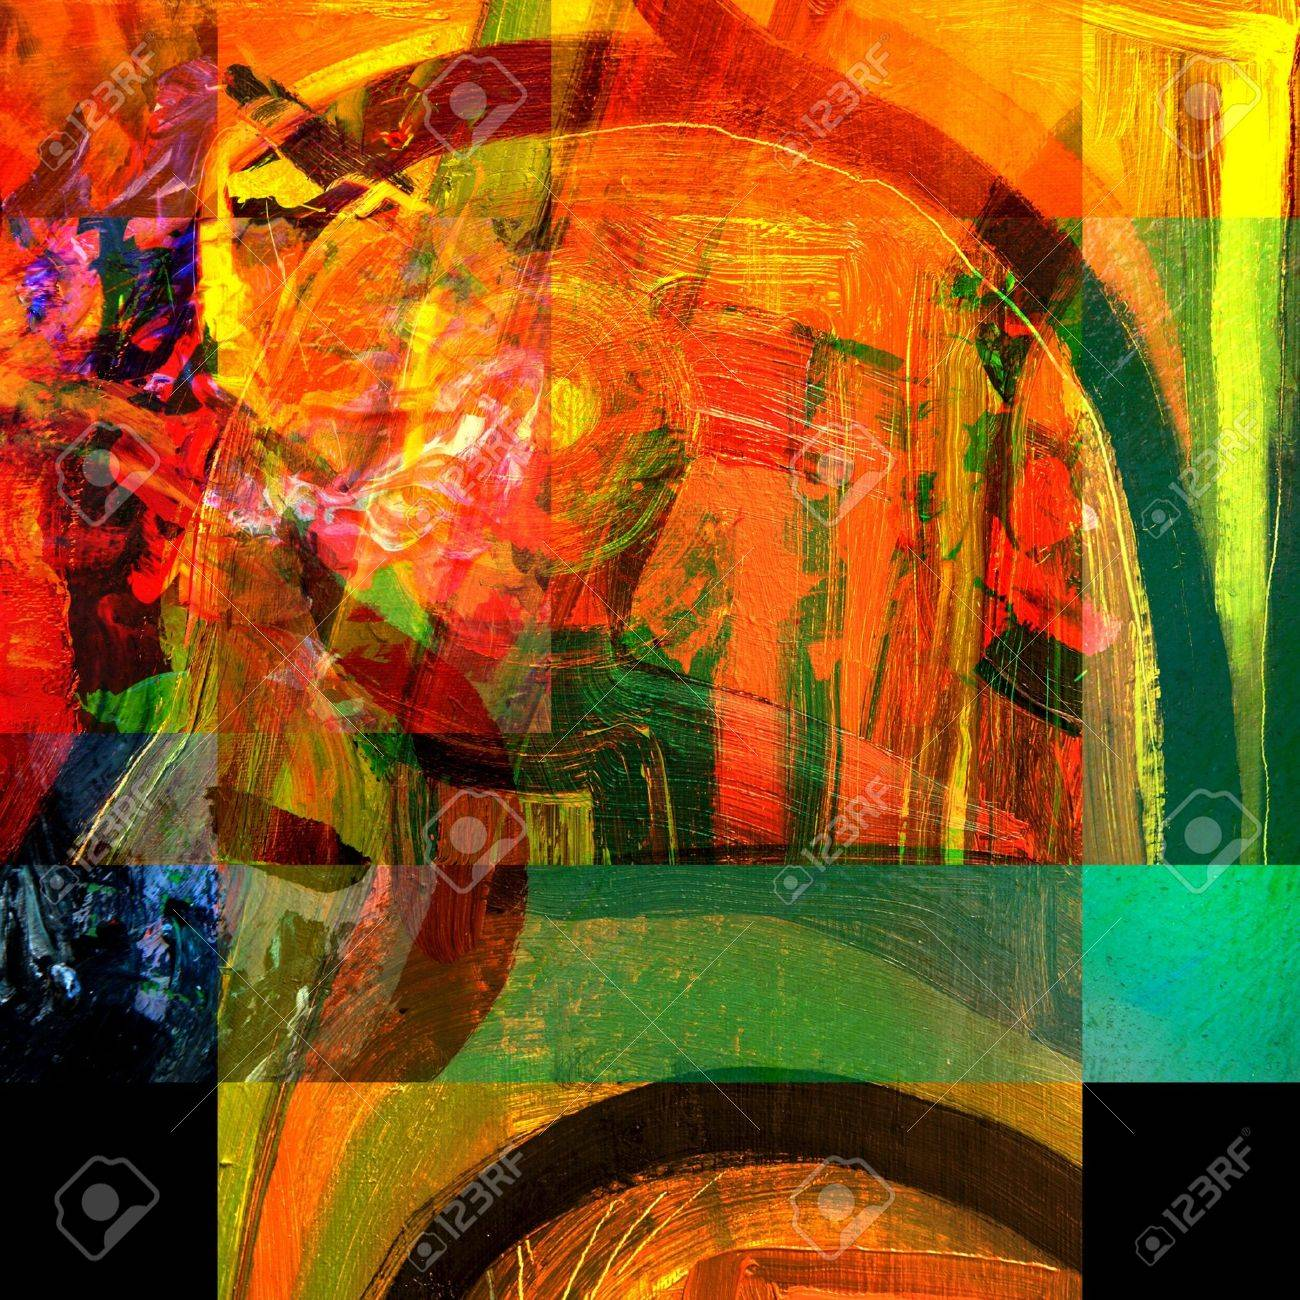 very nice Image of an original Large scale Abstract Painting In Canvas Stock Photo - 11089571